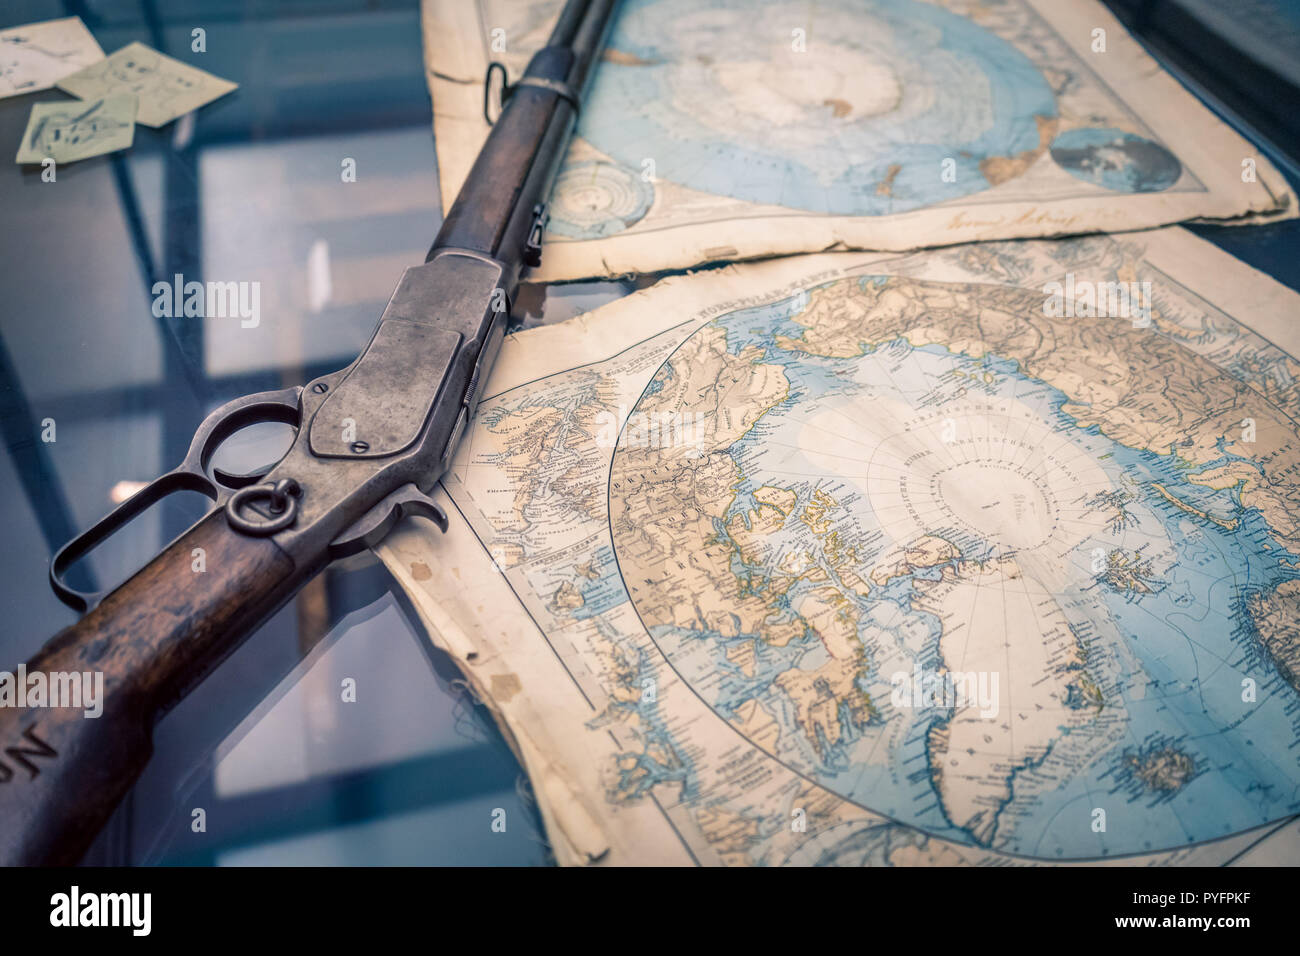 A vintage rifle and a vintage Antarctic region map as a concept of brave expeditions to the North pole Stock Photo